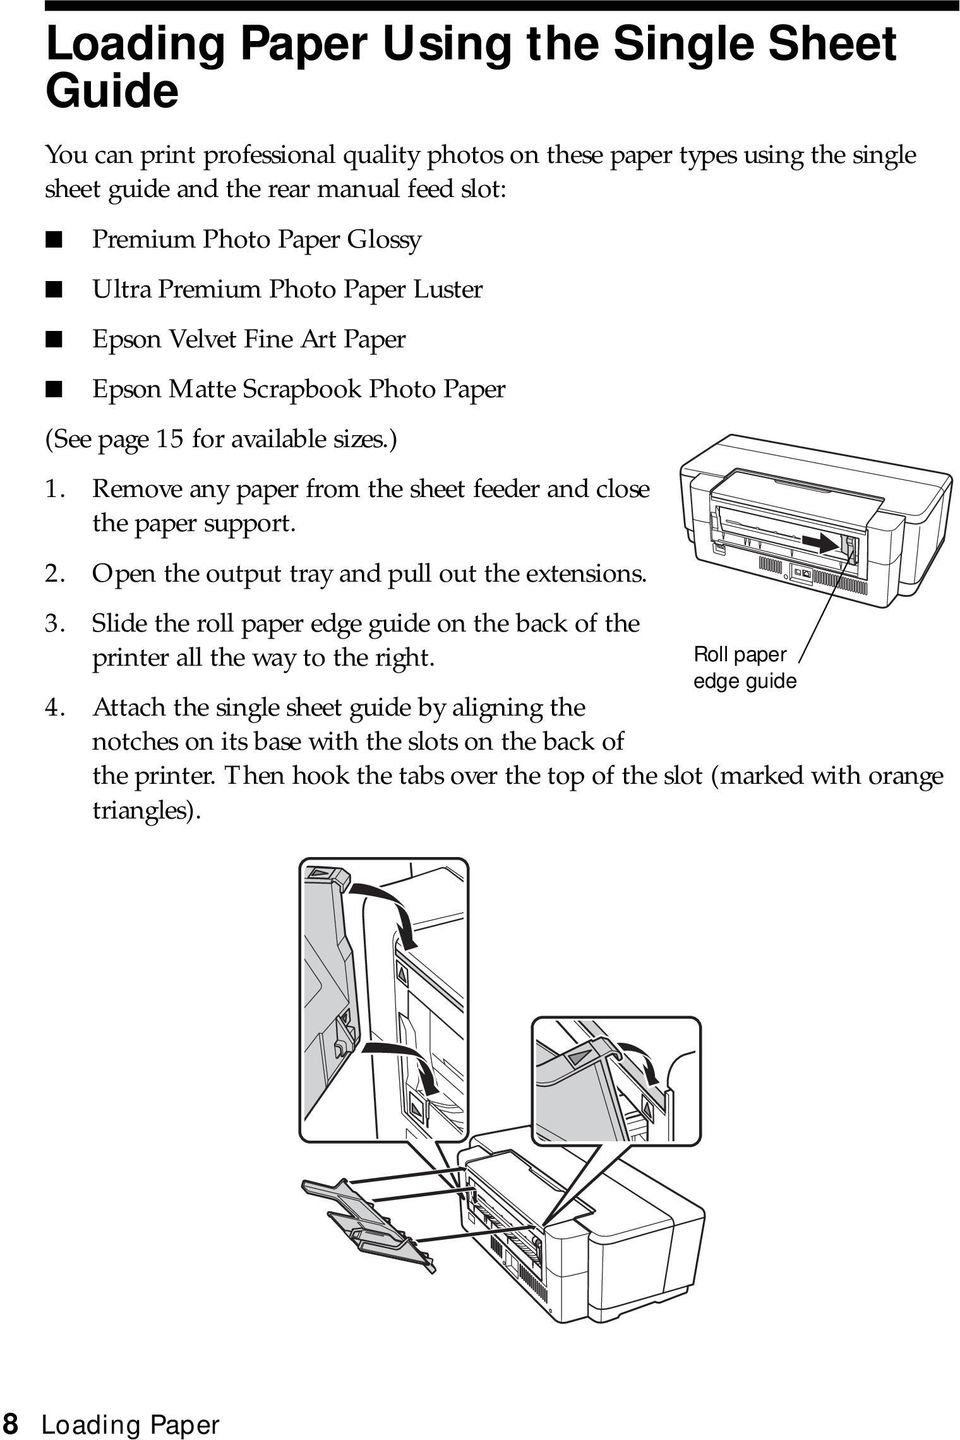 Remove any paper from the sheet feeder and close the paper support. 2. Open the output tray and pull out the extensions. 3.